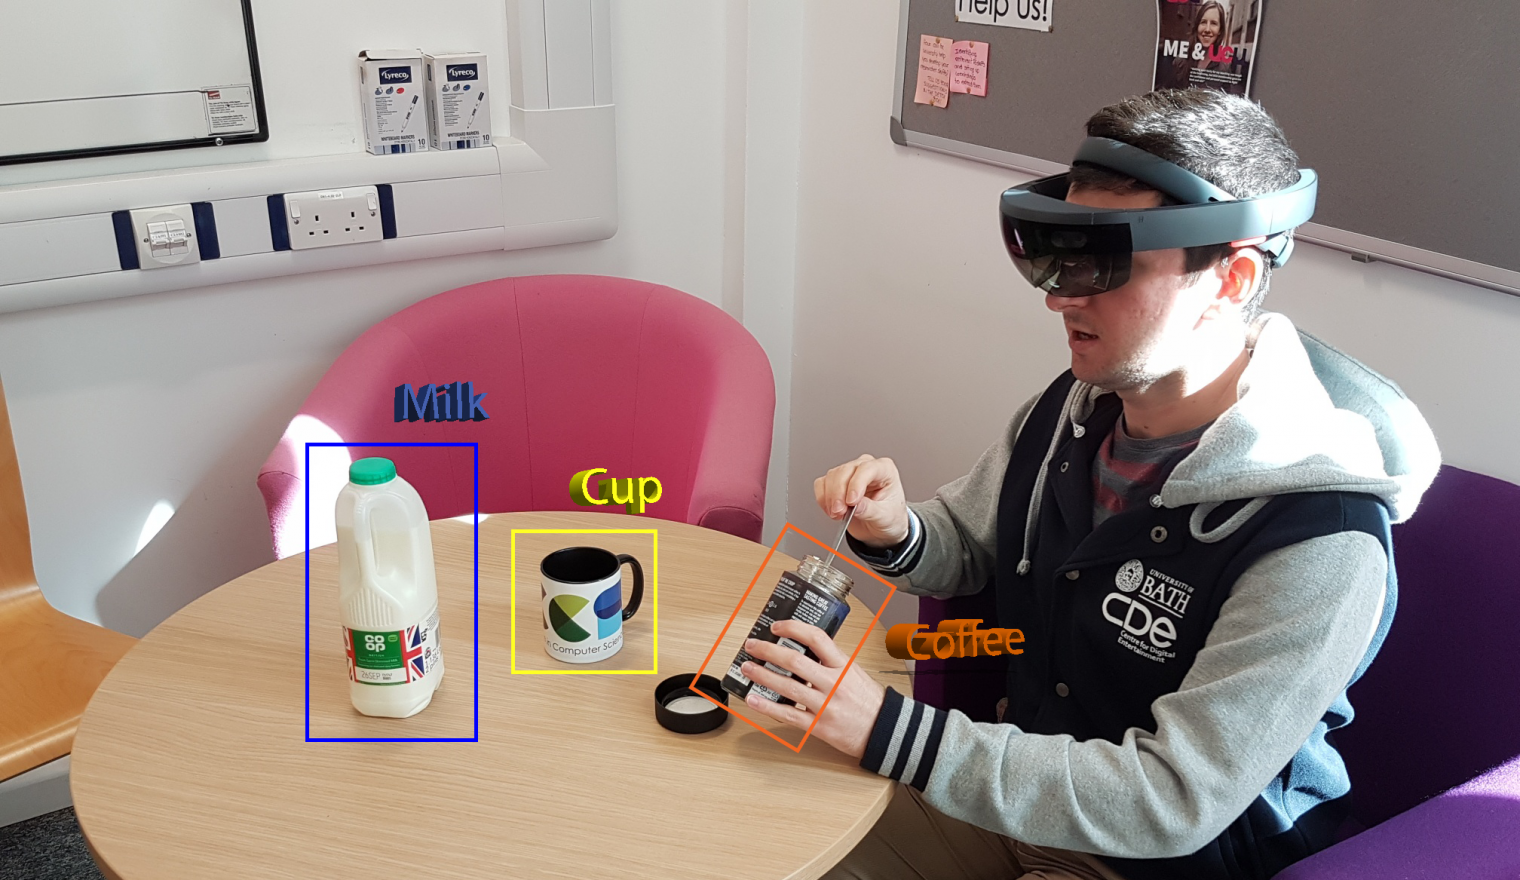 A man sat at a table making a cup of coffee using augmented reality technology